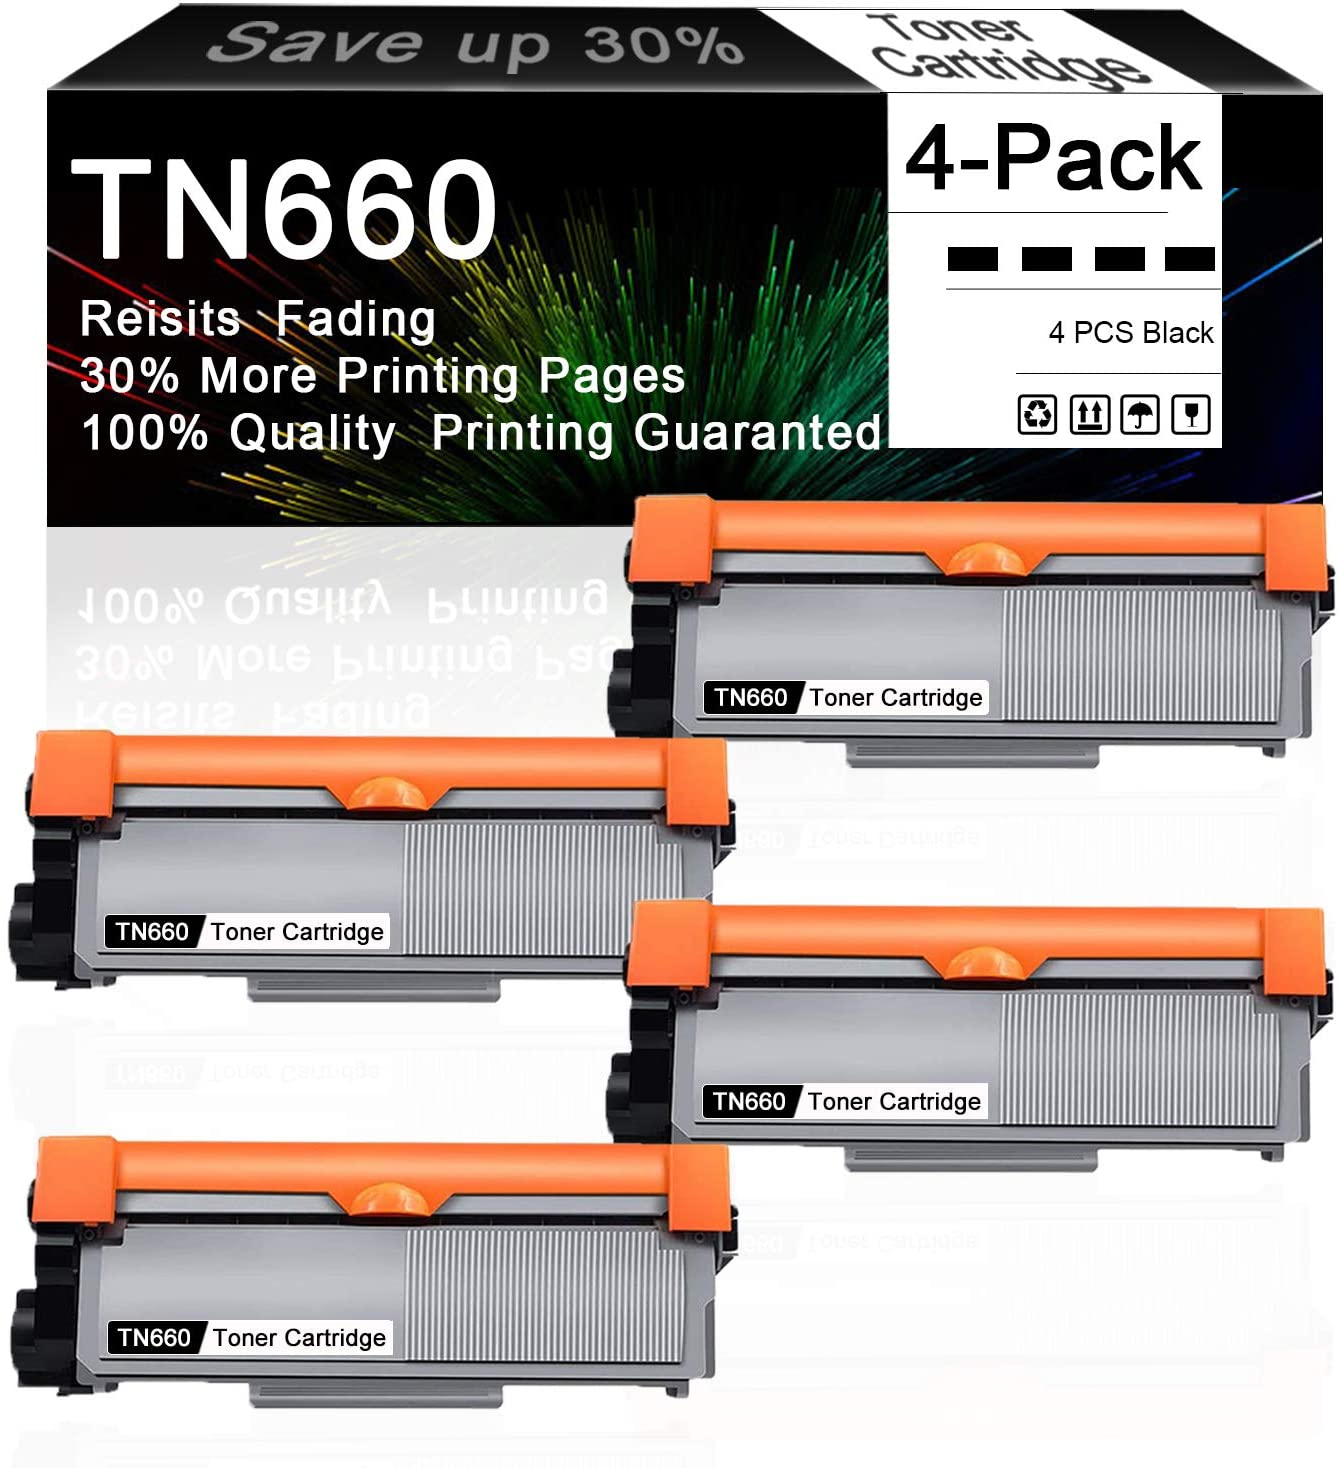 Compatible TN660 TN-660 (Black, 4-Pack) High Yield Toner Cartridge Replacement for Brother HL-L2300D HL-L2340DW HL-L2360DW MFC-L2700DW MFC-L2705DW DCP-L2540DW Printer, Sold by CuToner.